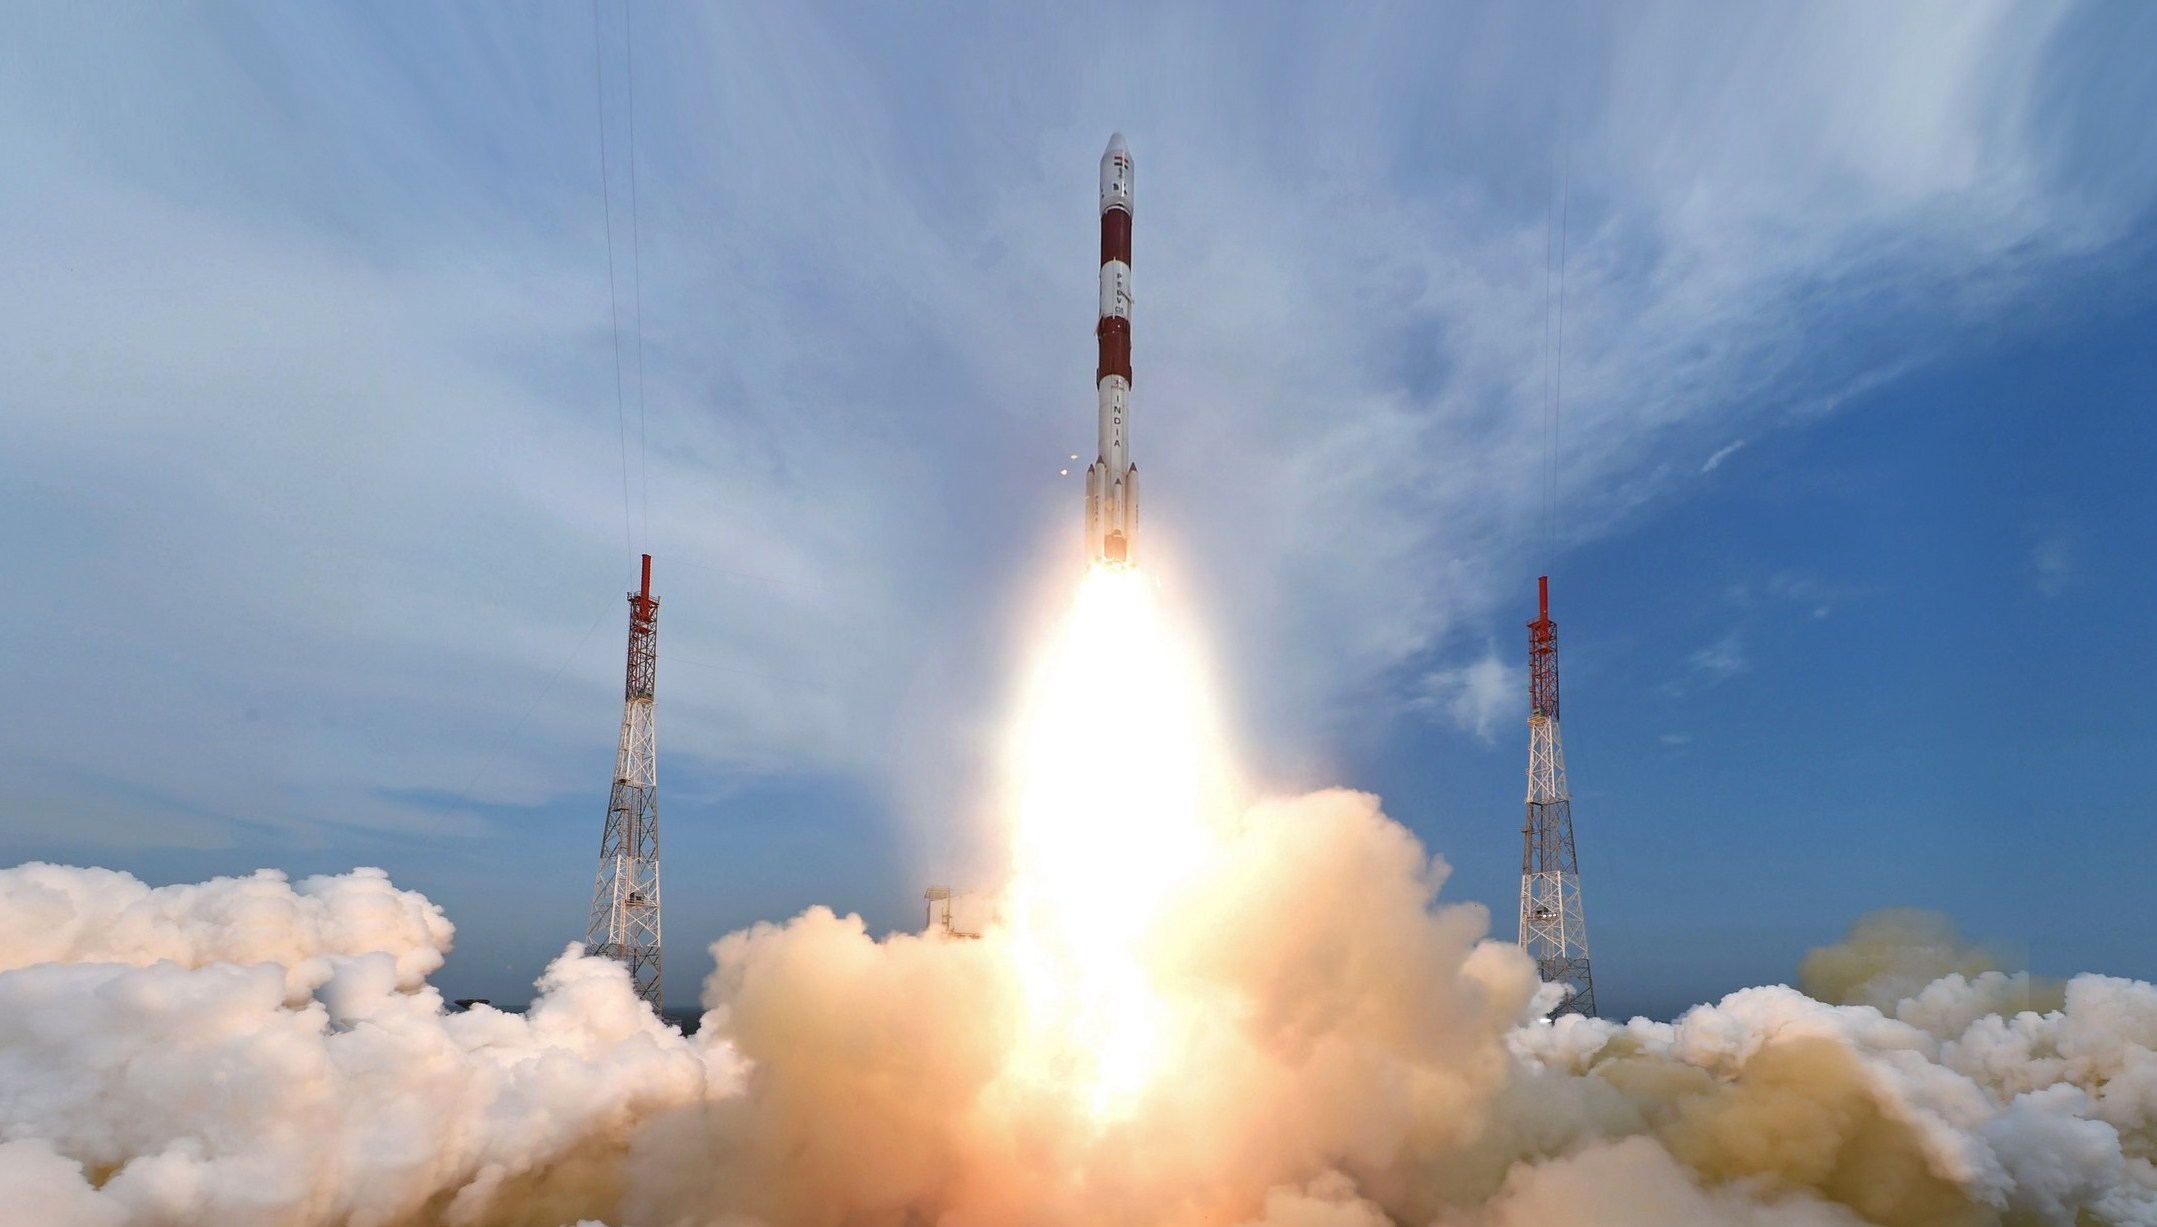 Isro S Record Launch Less Known Innovations Newsclick